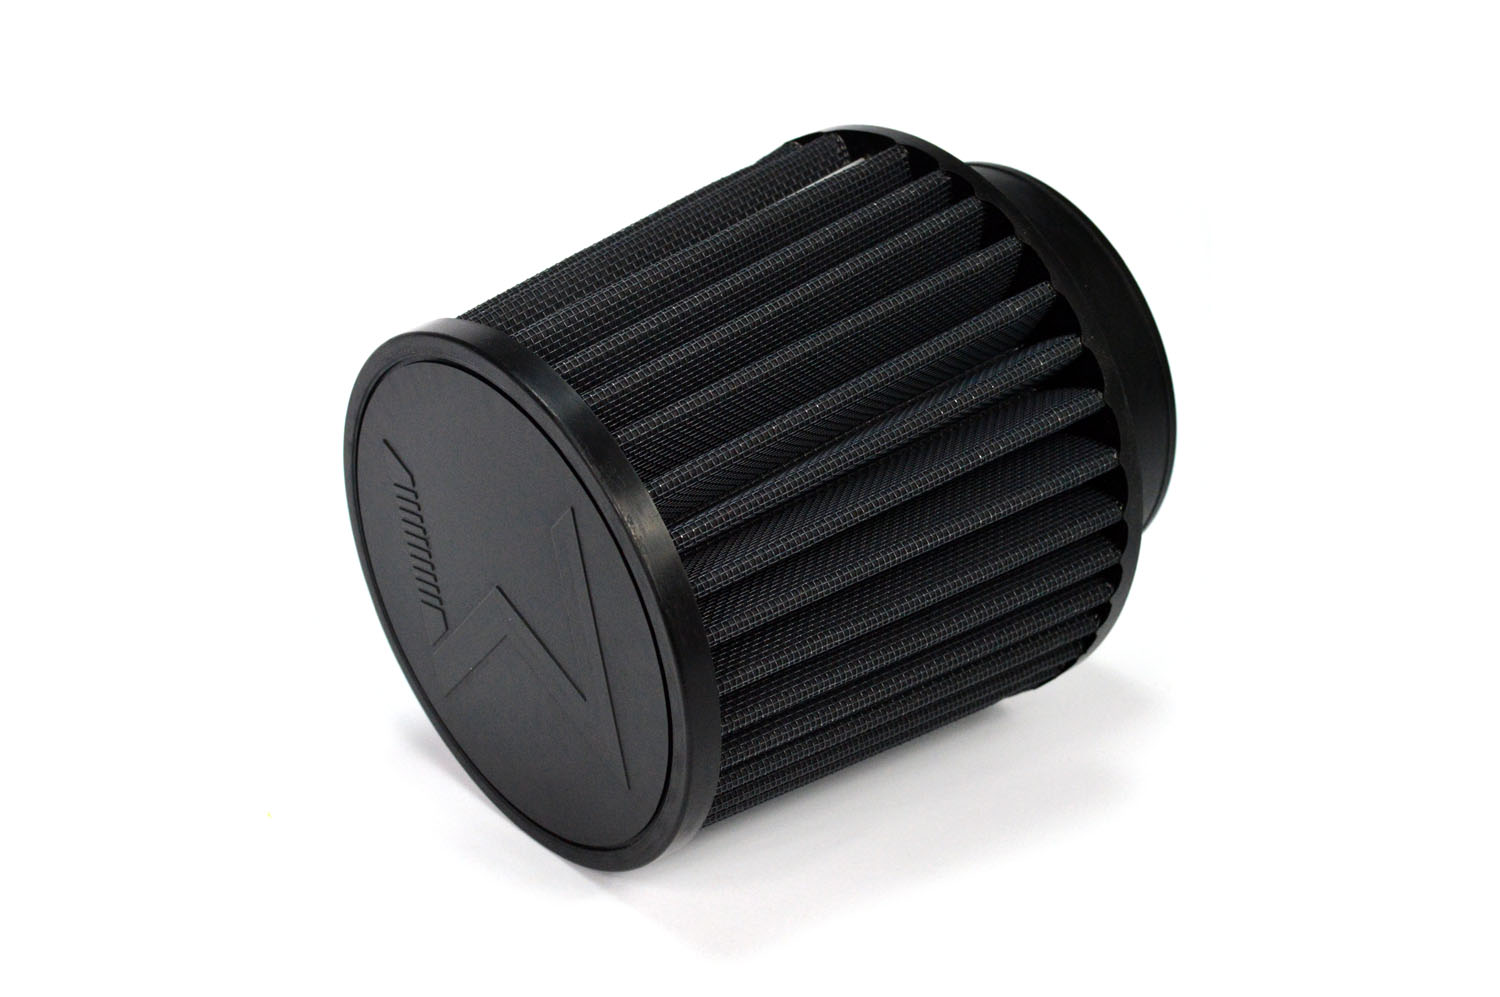 A reinforced Dryflow Air Filter is used for superior flow and filtration performance.